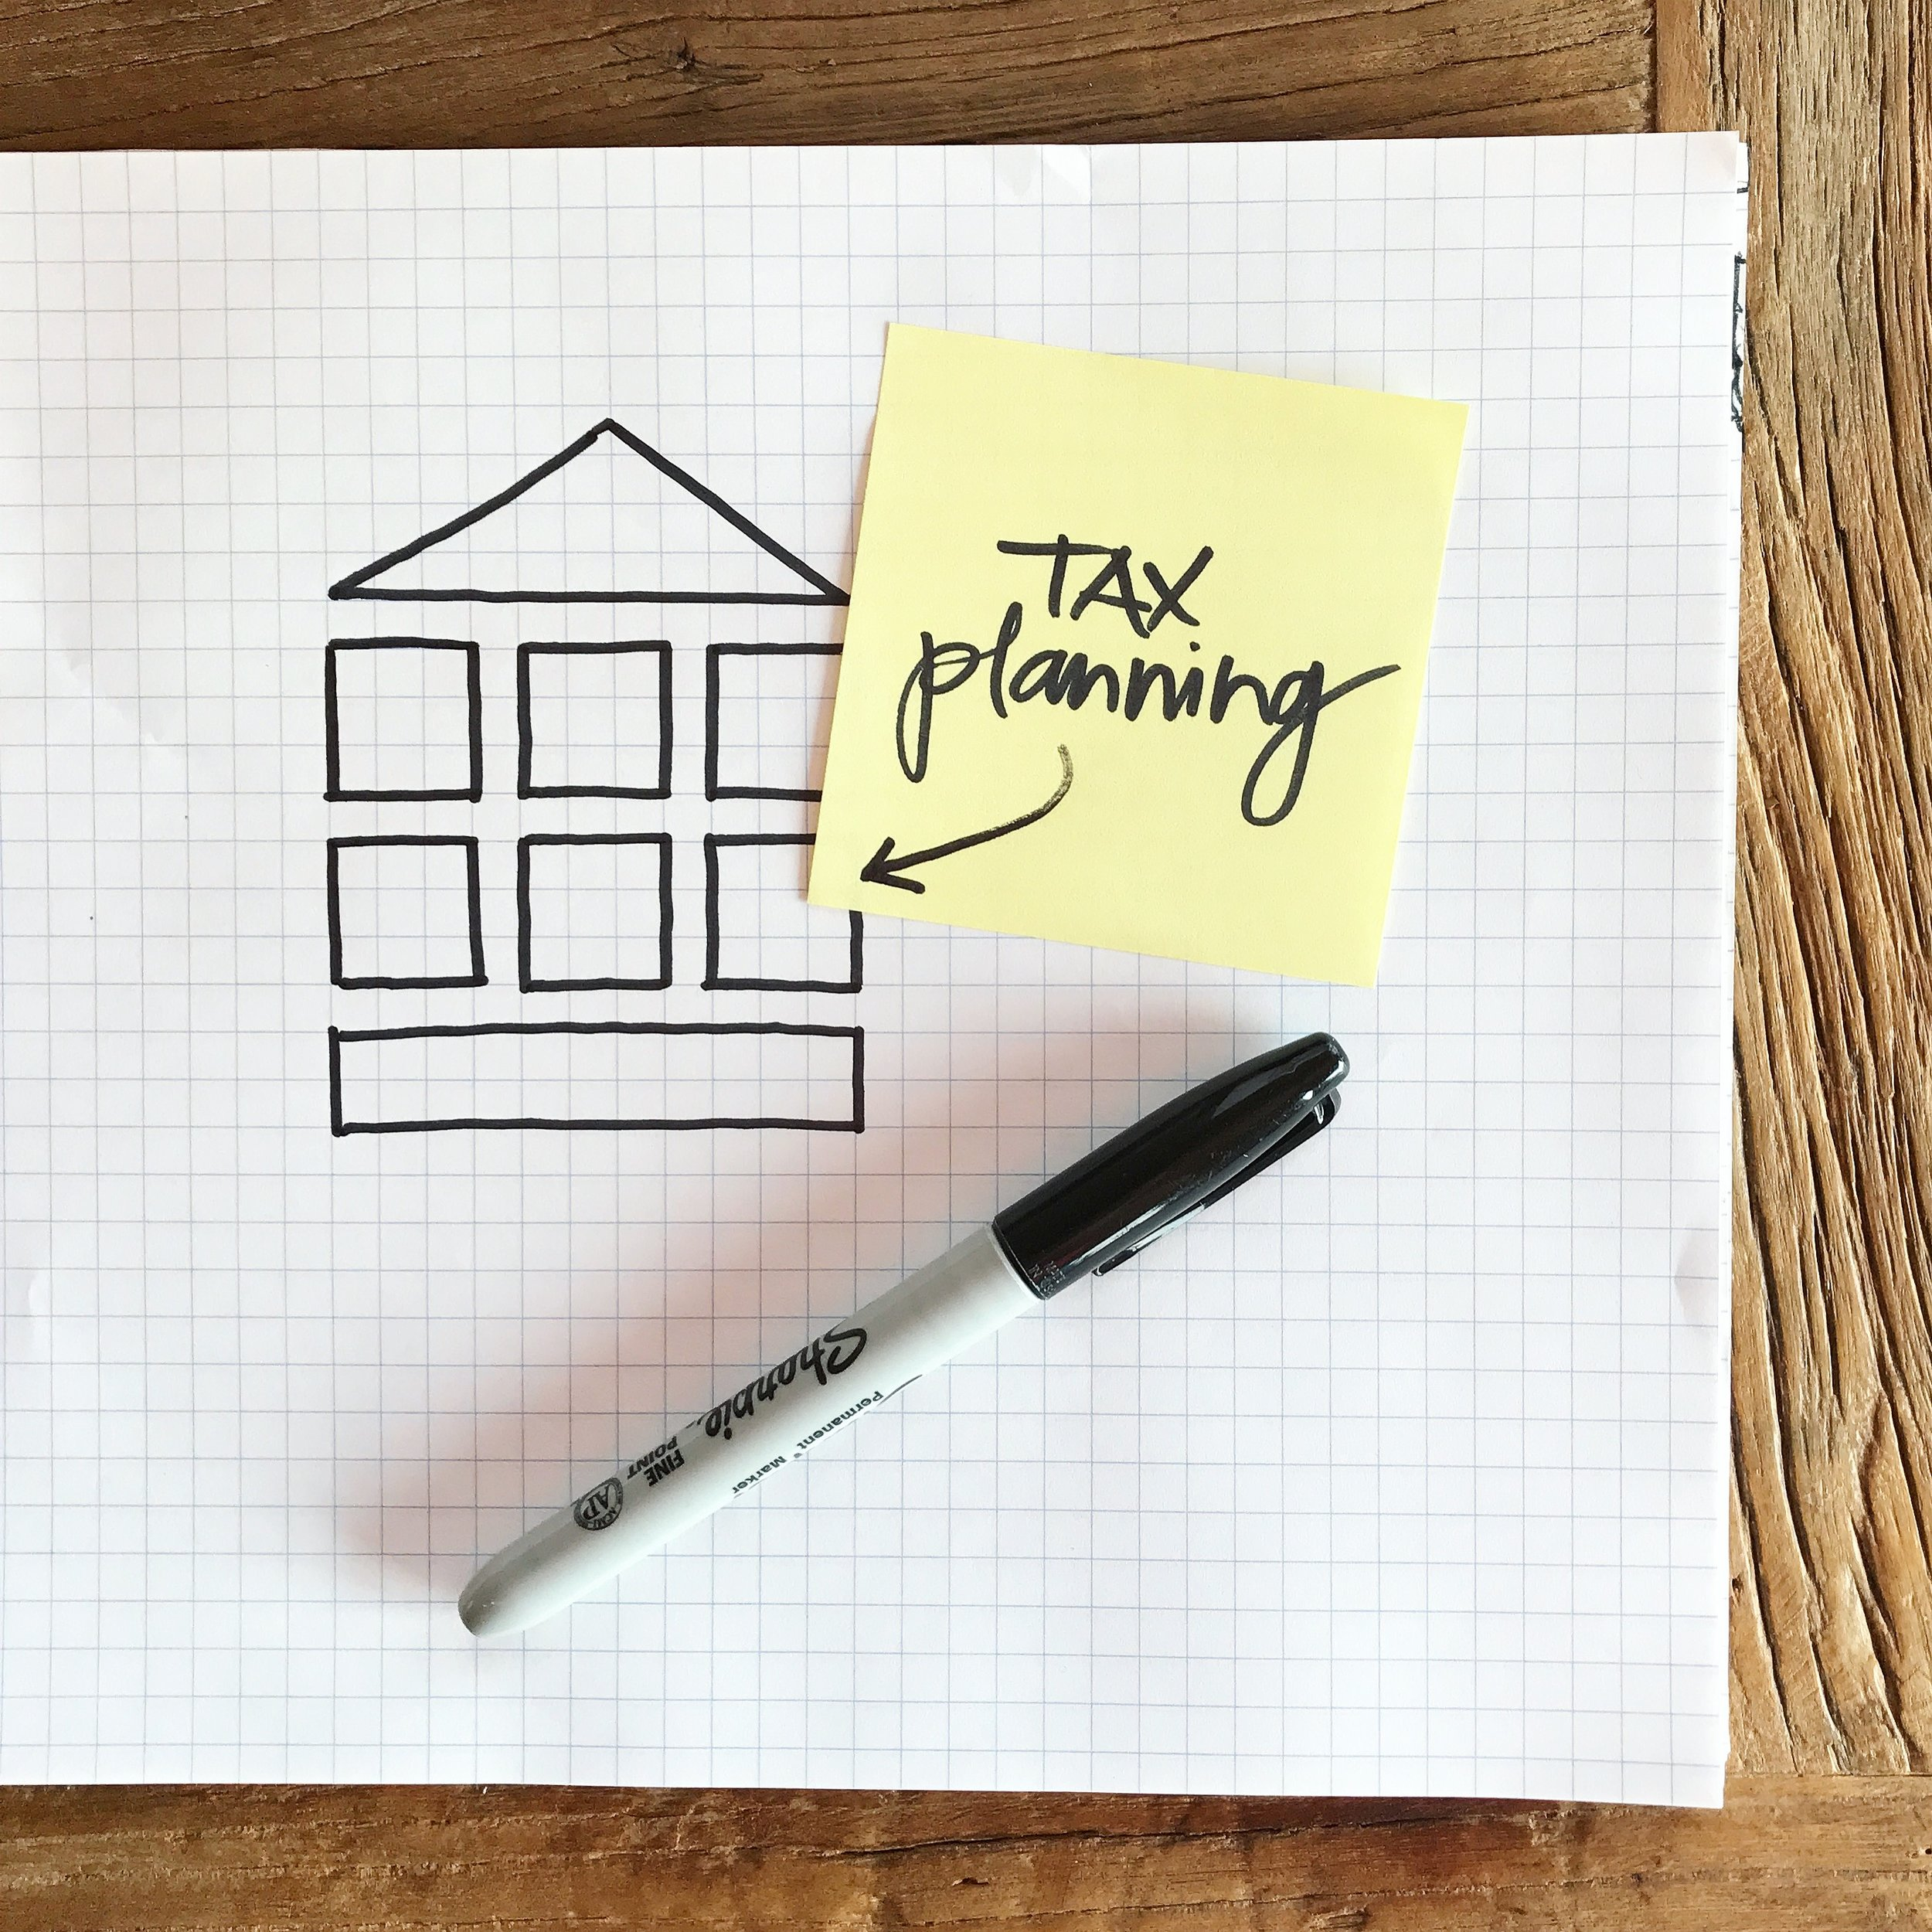 Tax Planning   We don't just focus on how to lower last year's taxes for you, but rather on what gives you the most tax flexibility for the next 30 years.   Instead of being reactive, we try to be as proactive as possible when it comes to tax planning.